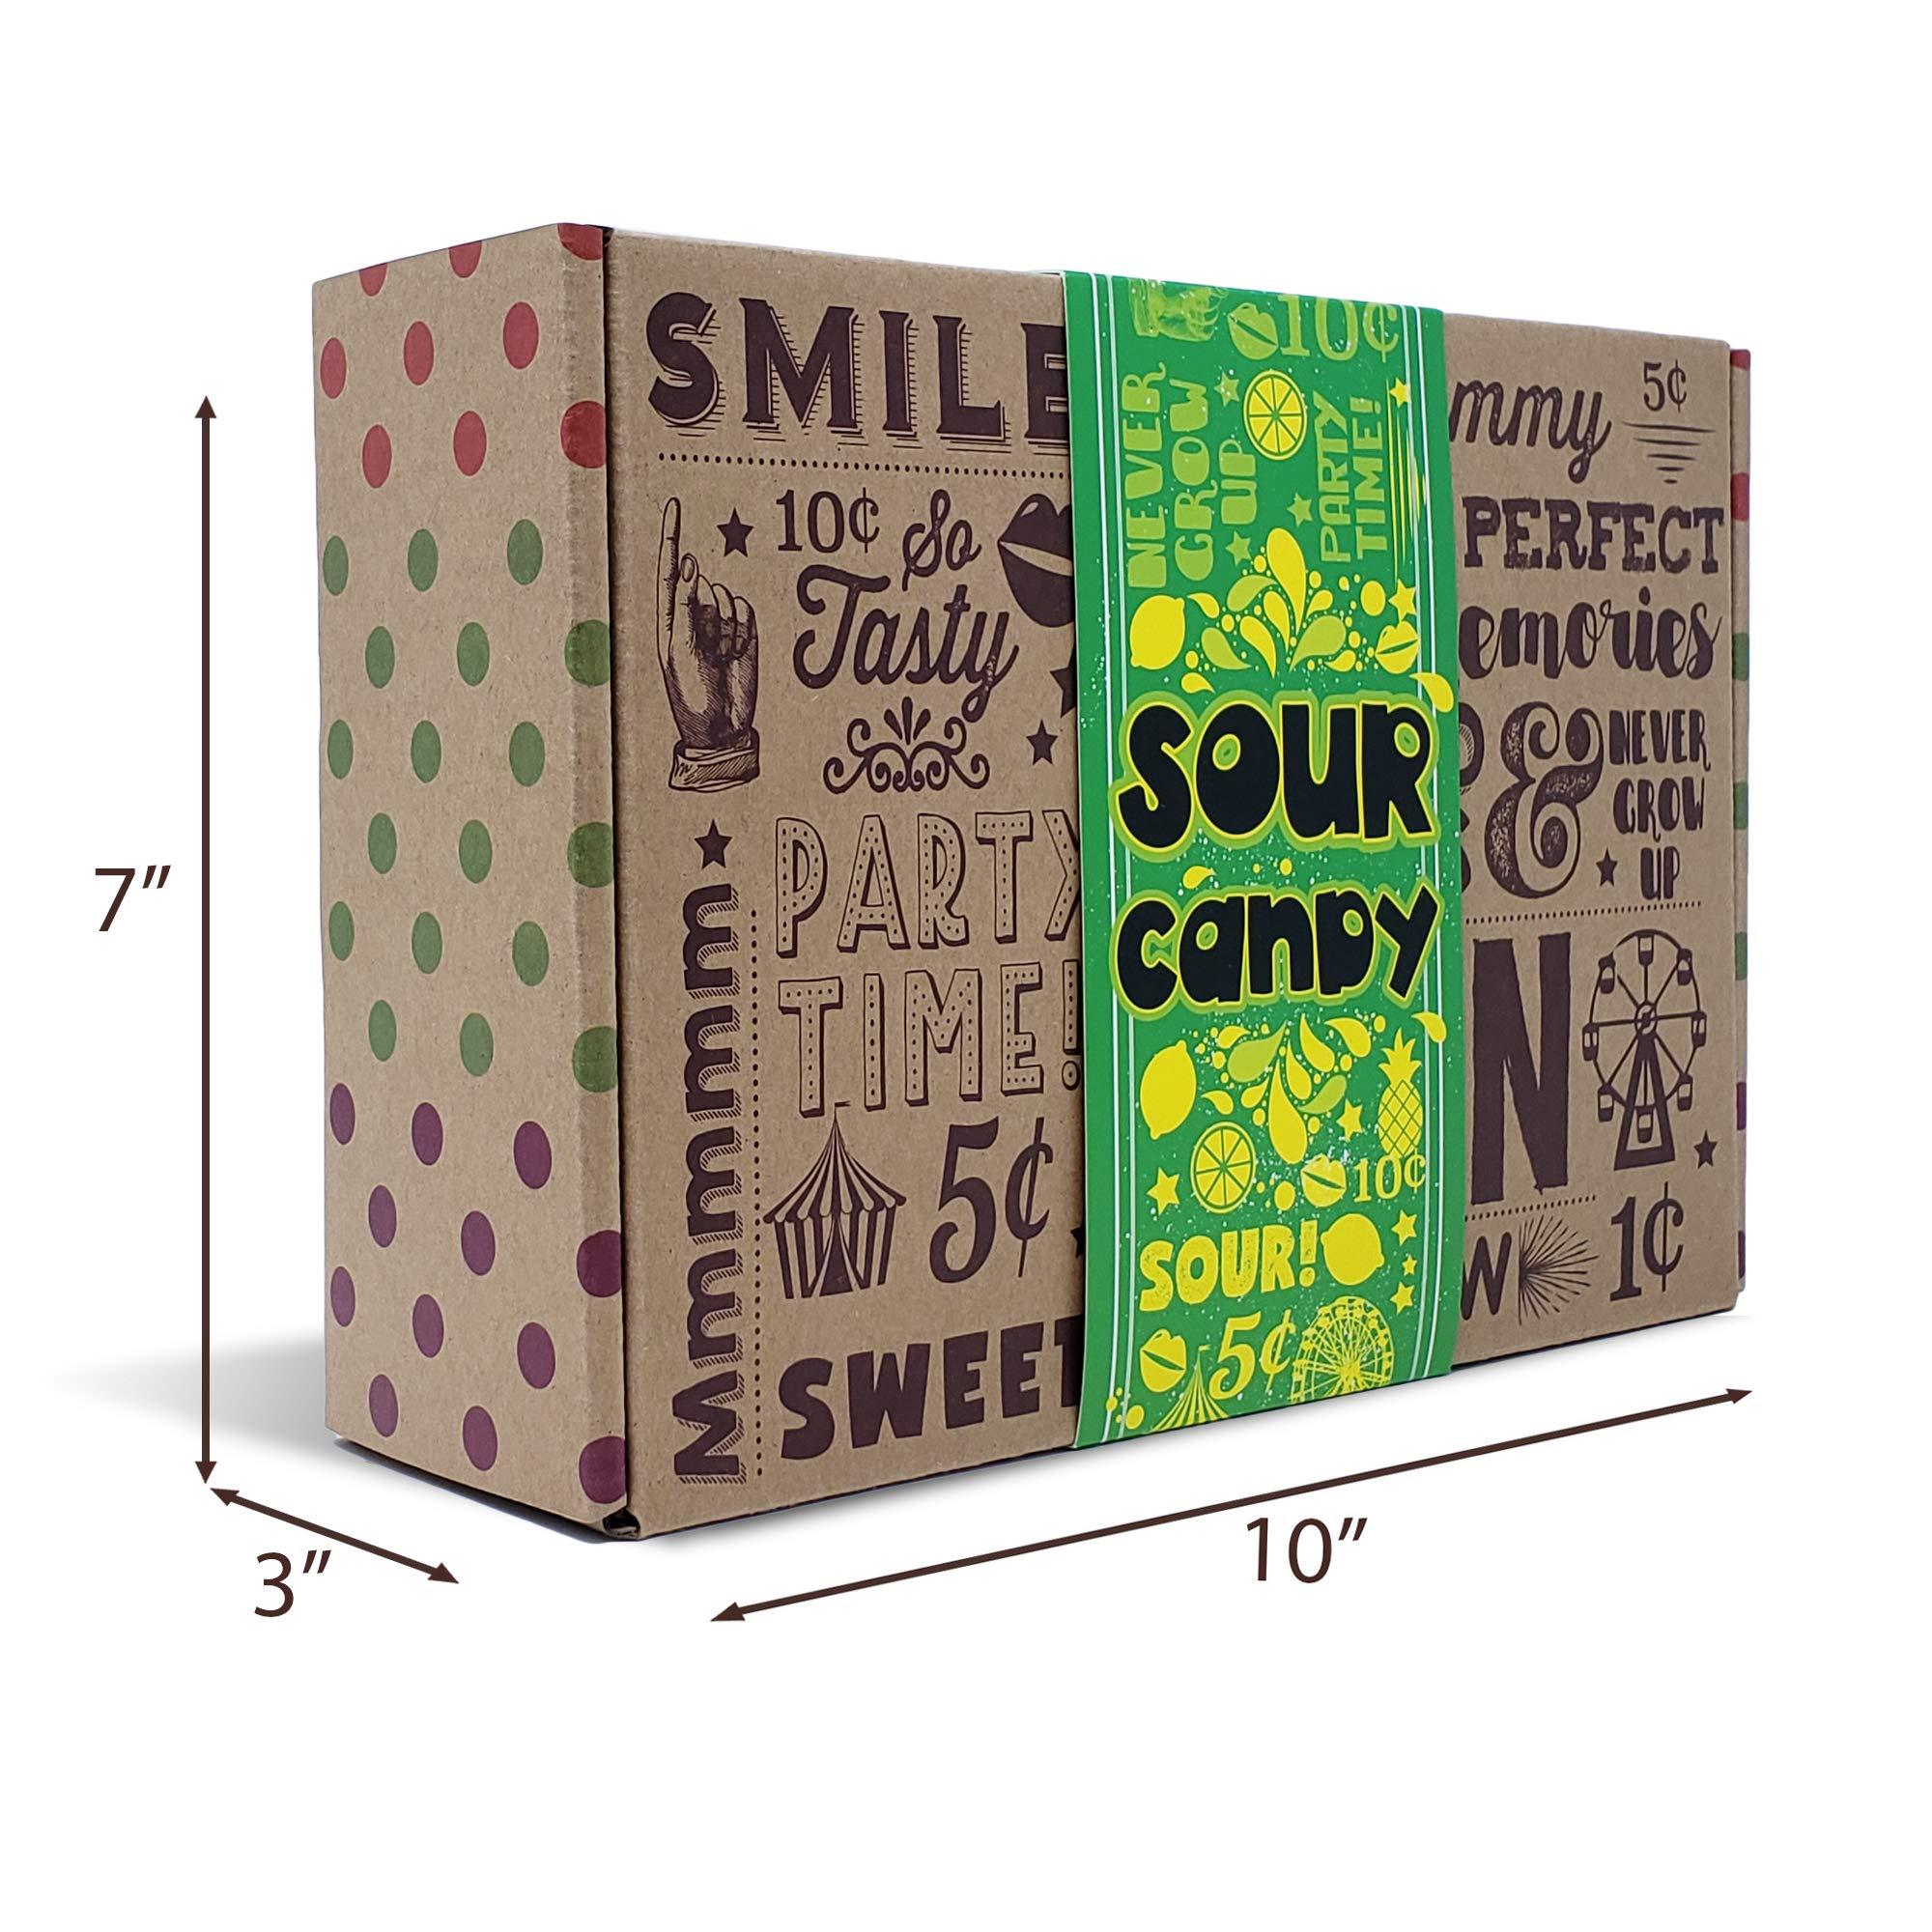 VINTAGE CANDY CO. SOUR CANDY ASSORTMENT GIFT BOX - Best Candy Variety Mix Care Package - Unique & Fun Gag Gift Basket - PERFECT For Man Or Woman Who LOVES SOUR Candy by Vintage Candy Co. (Image #9)